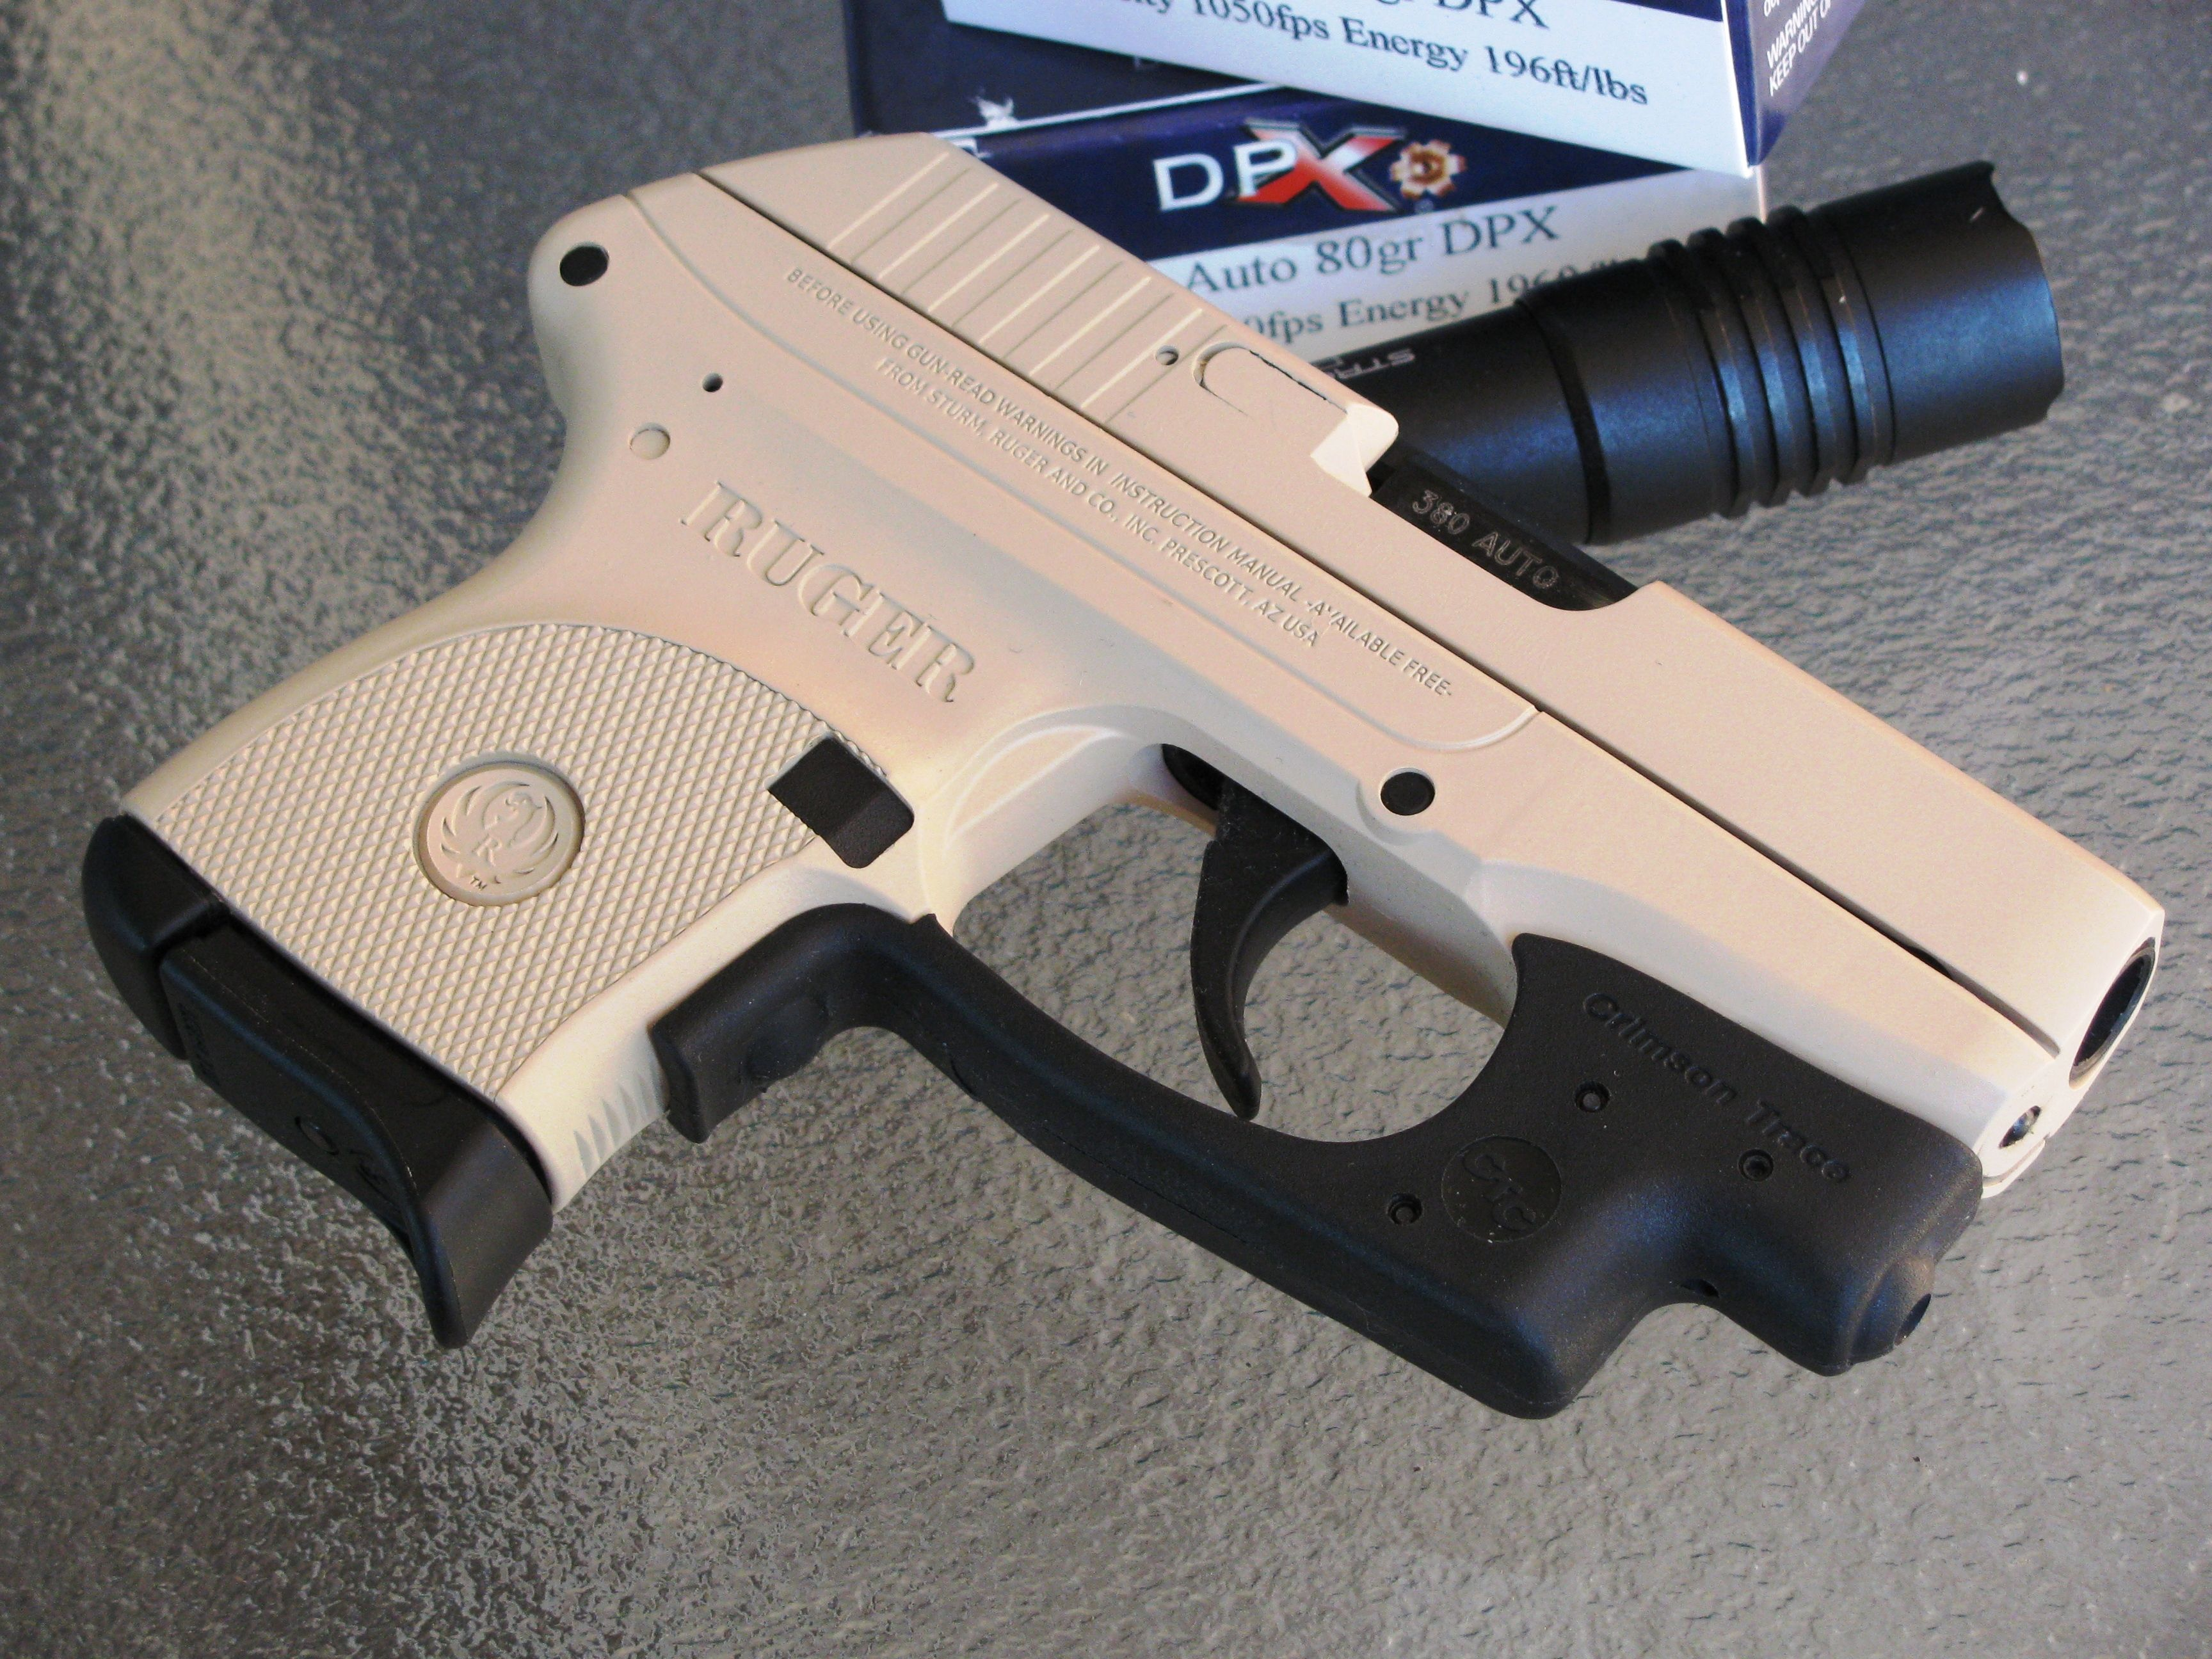 Ruger LCP ( 380 ACP) with Crimson Trace laser | Firearms photos